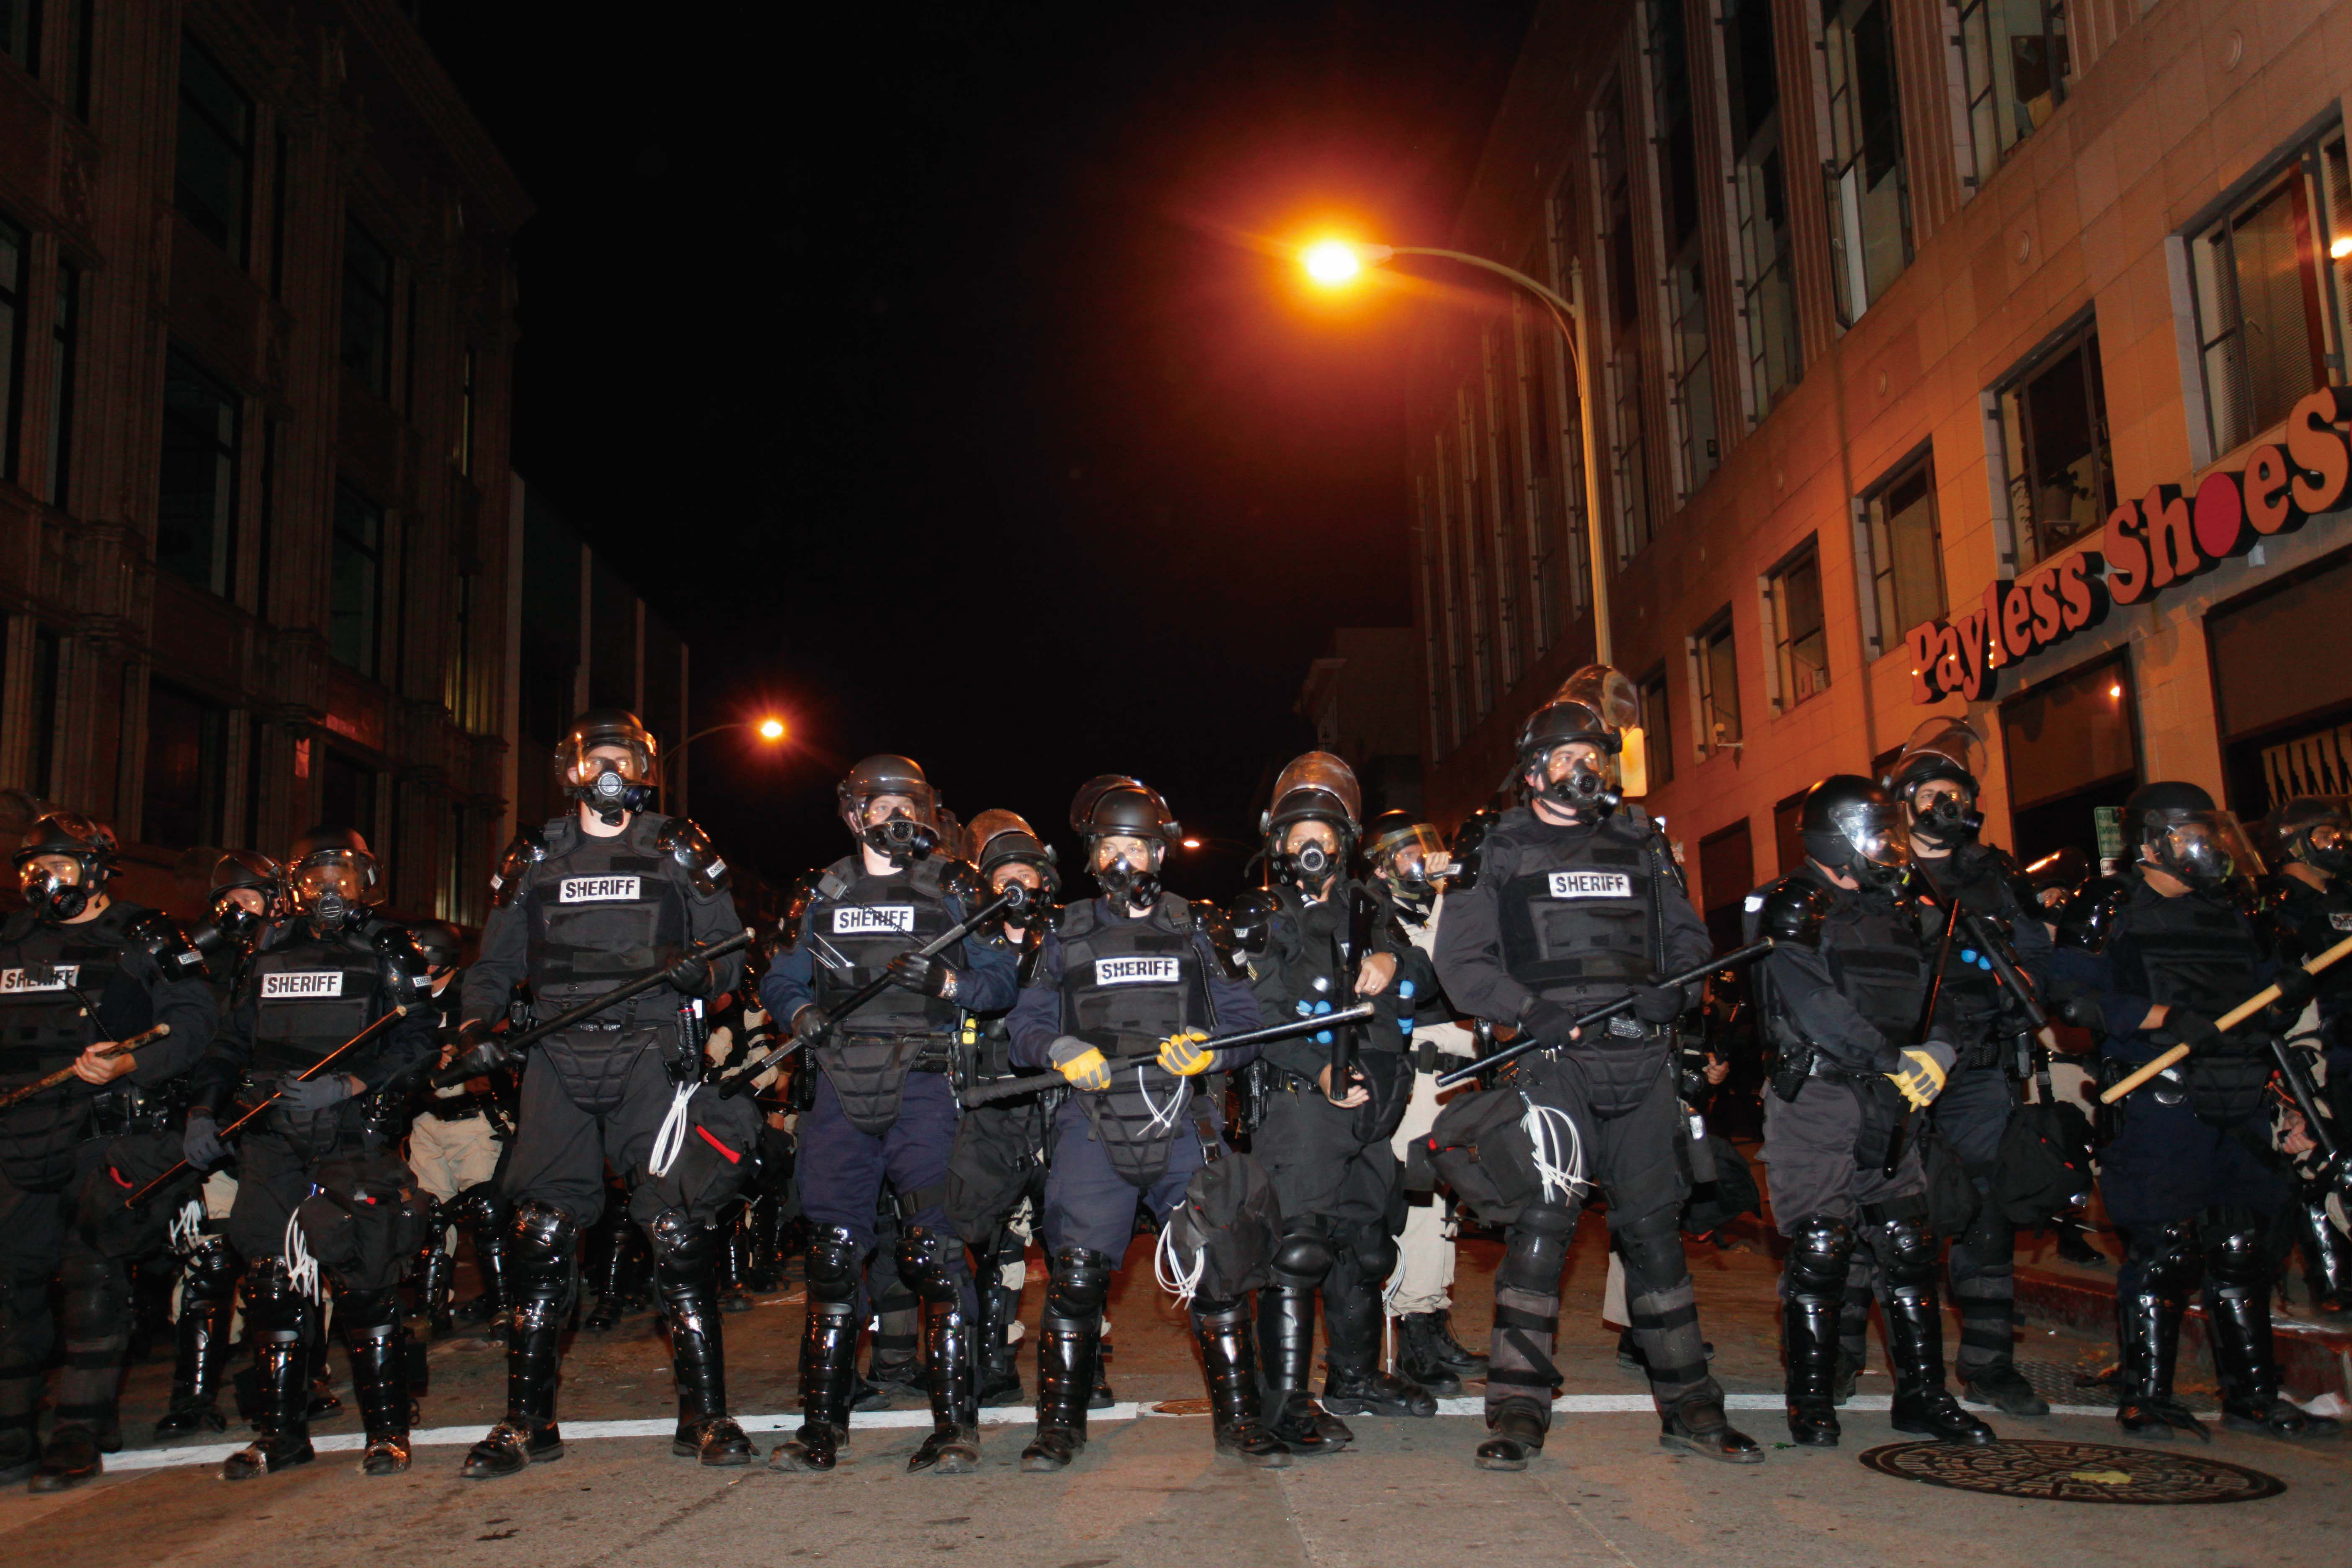 Police officers form a line to disperse the Occupy Oakland protesters who barricaded themselves on a street near the Oakland City Hall on November 3, ...